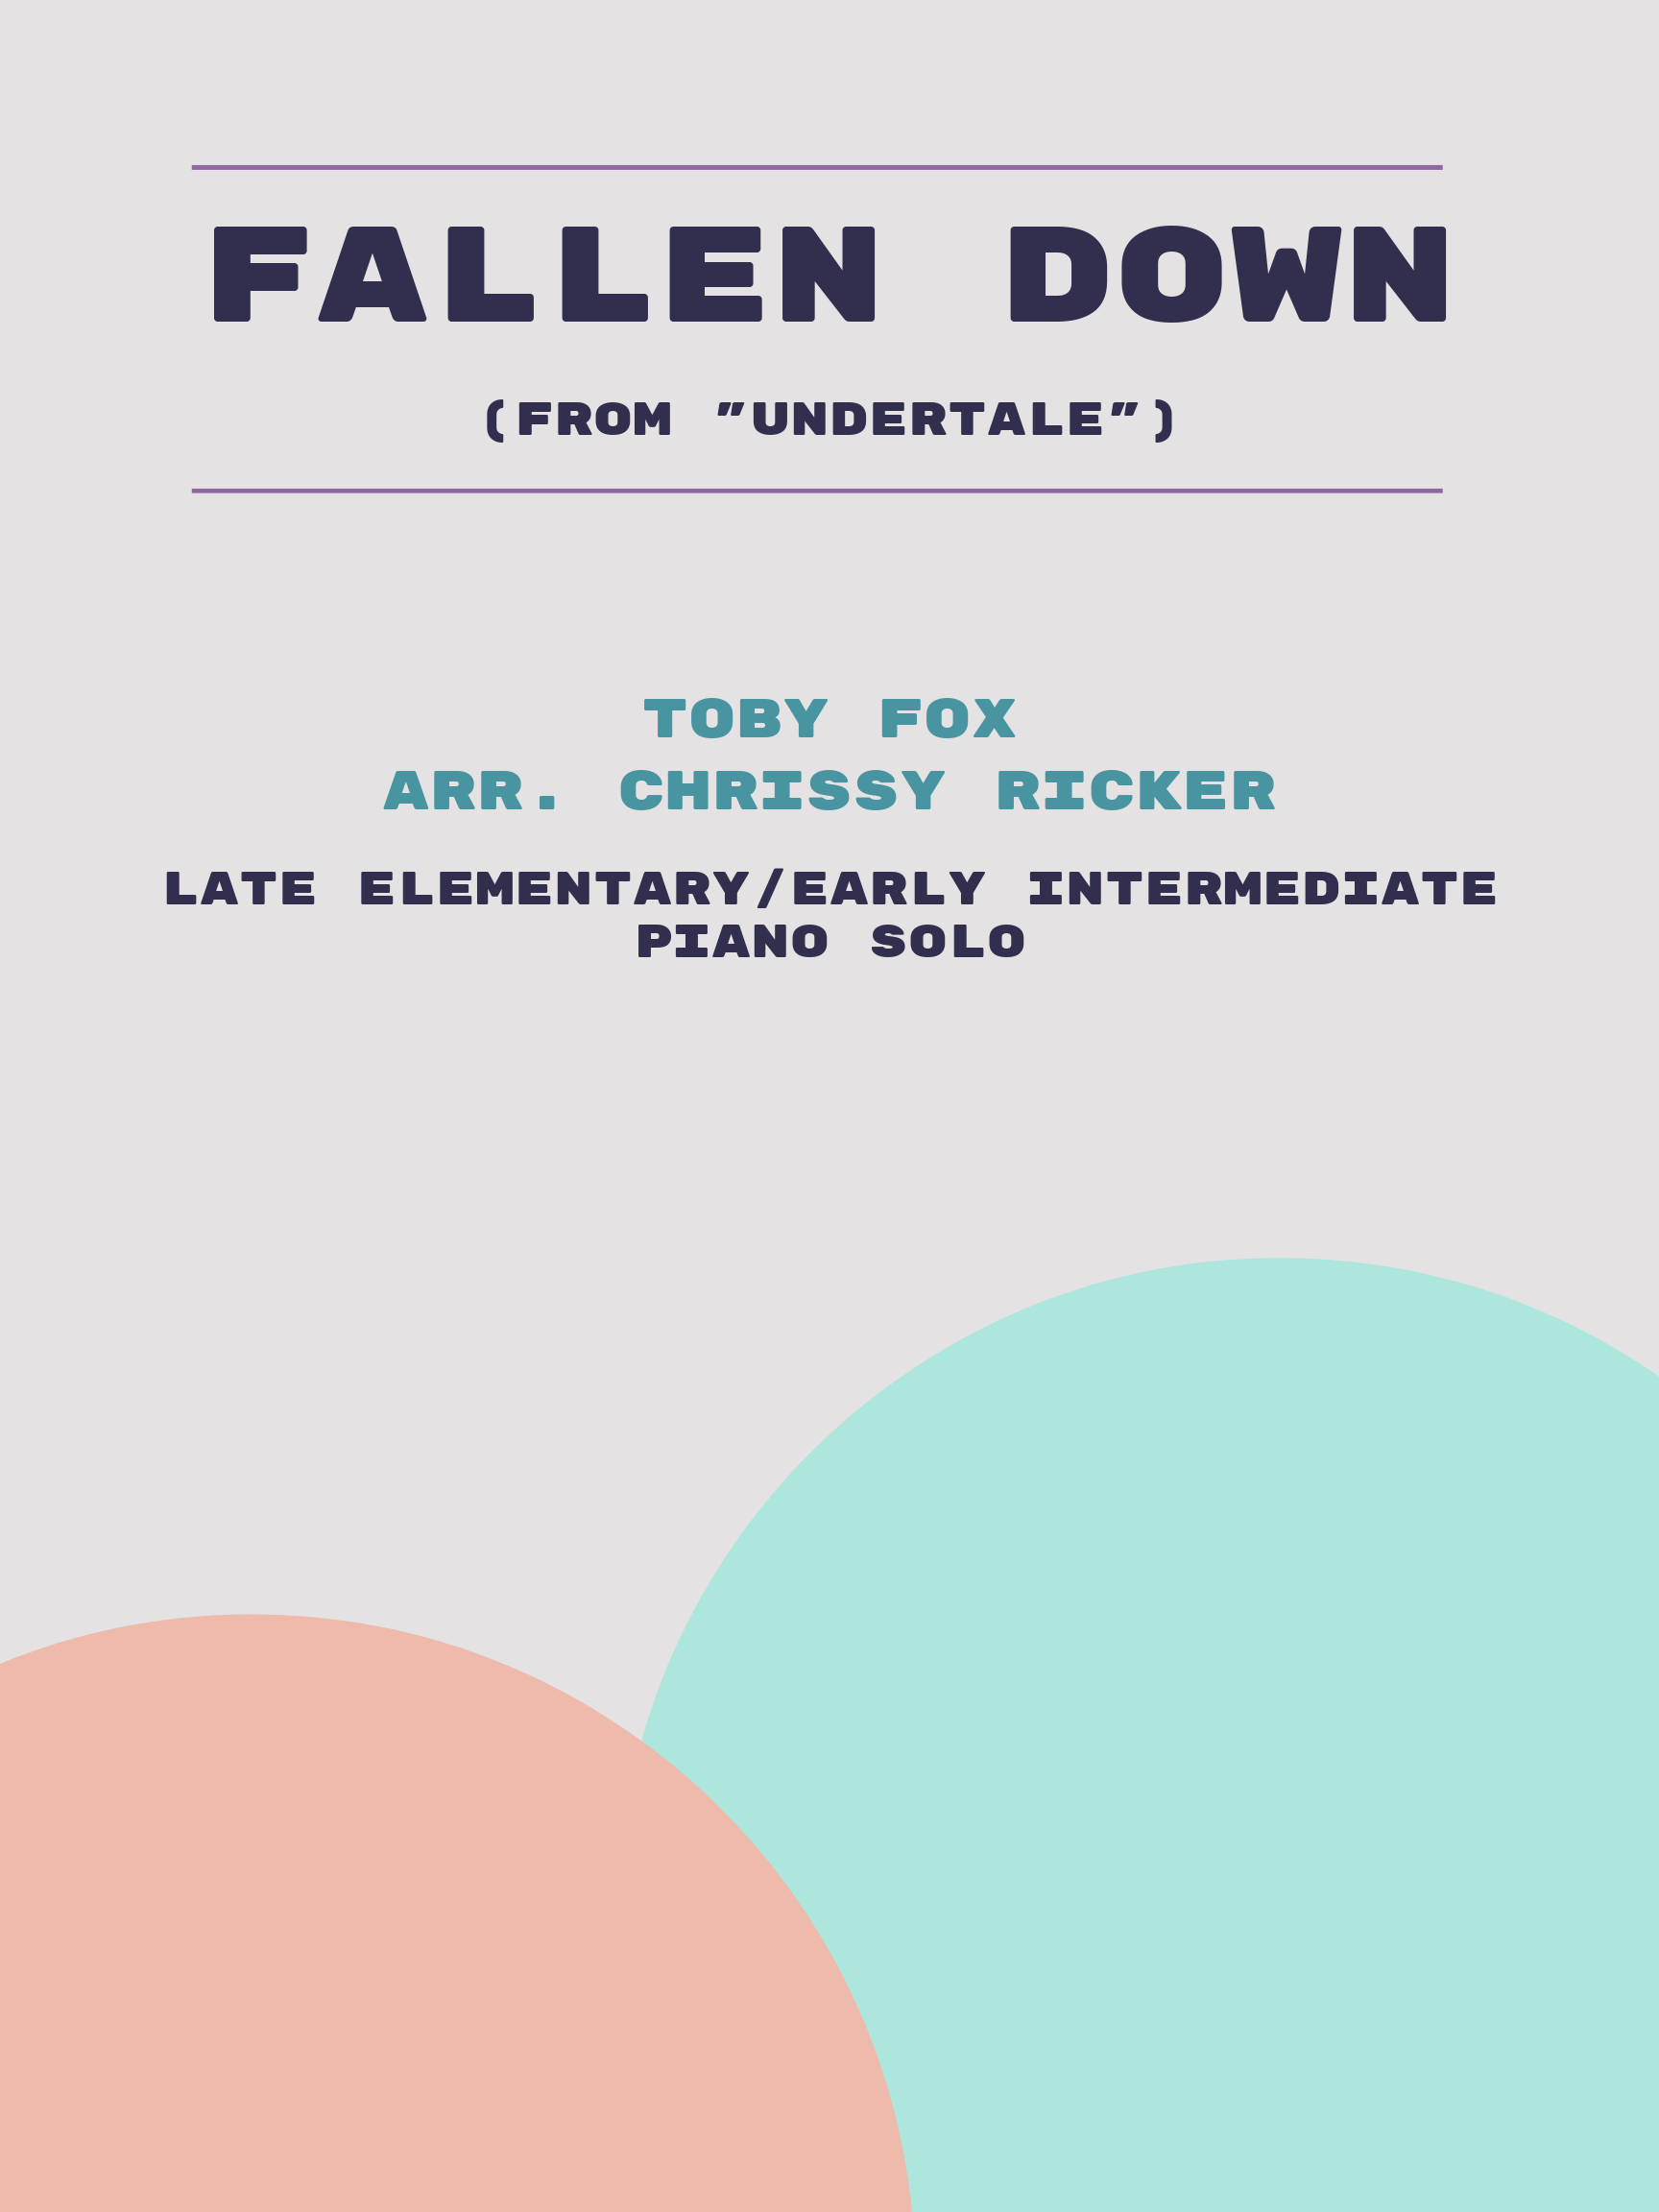 Fallen Down by Toby Fox